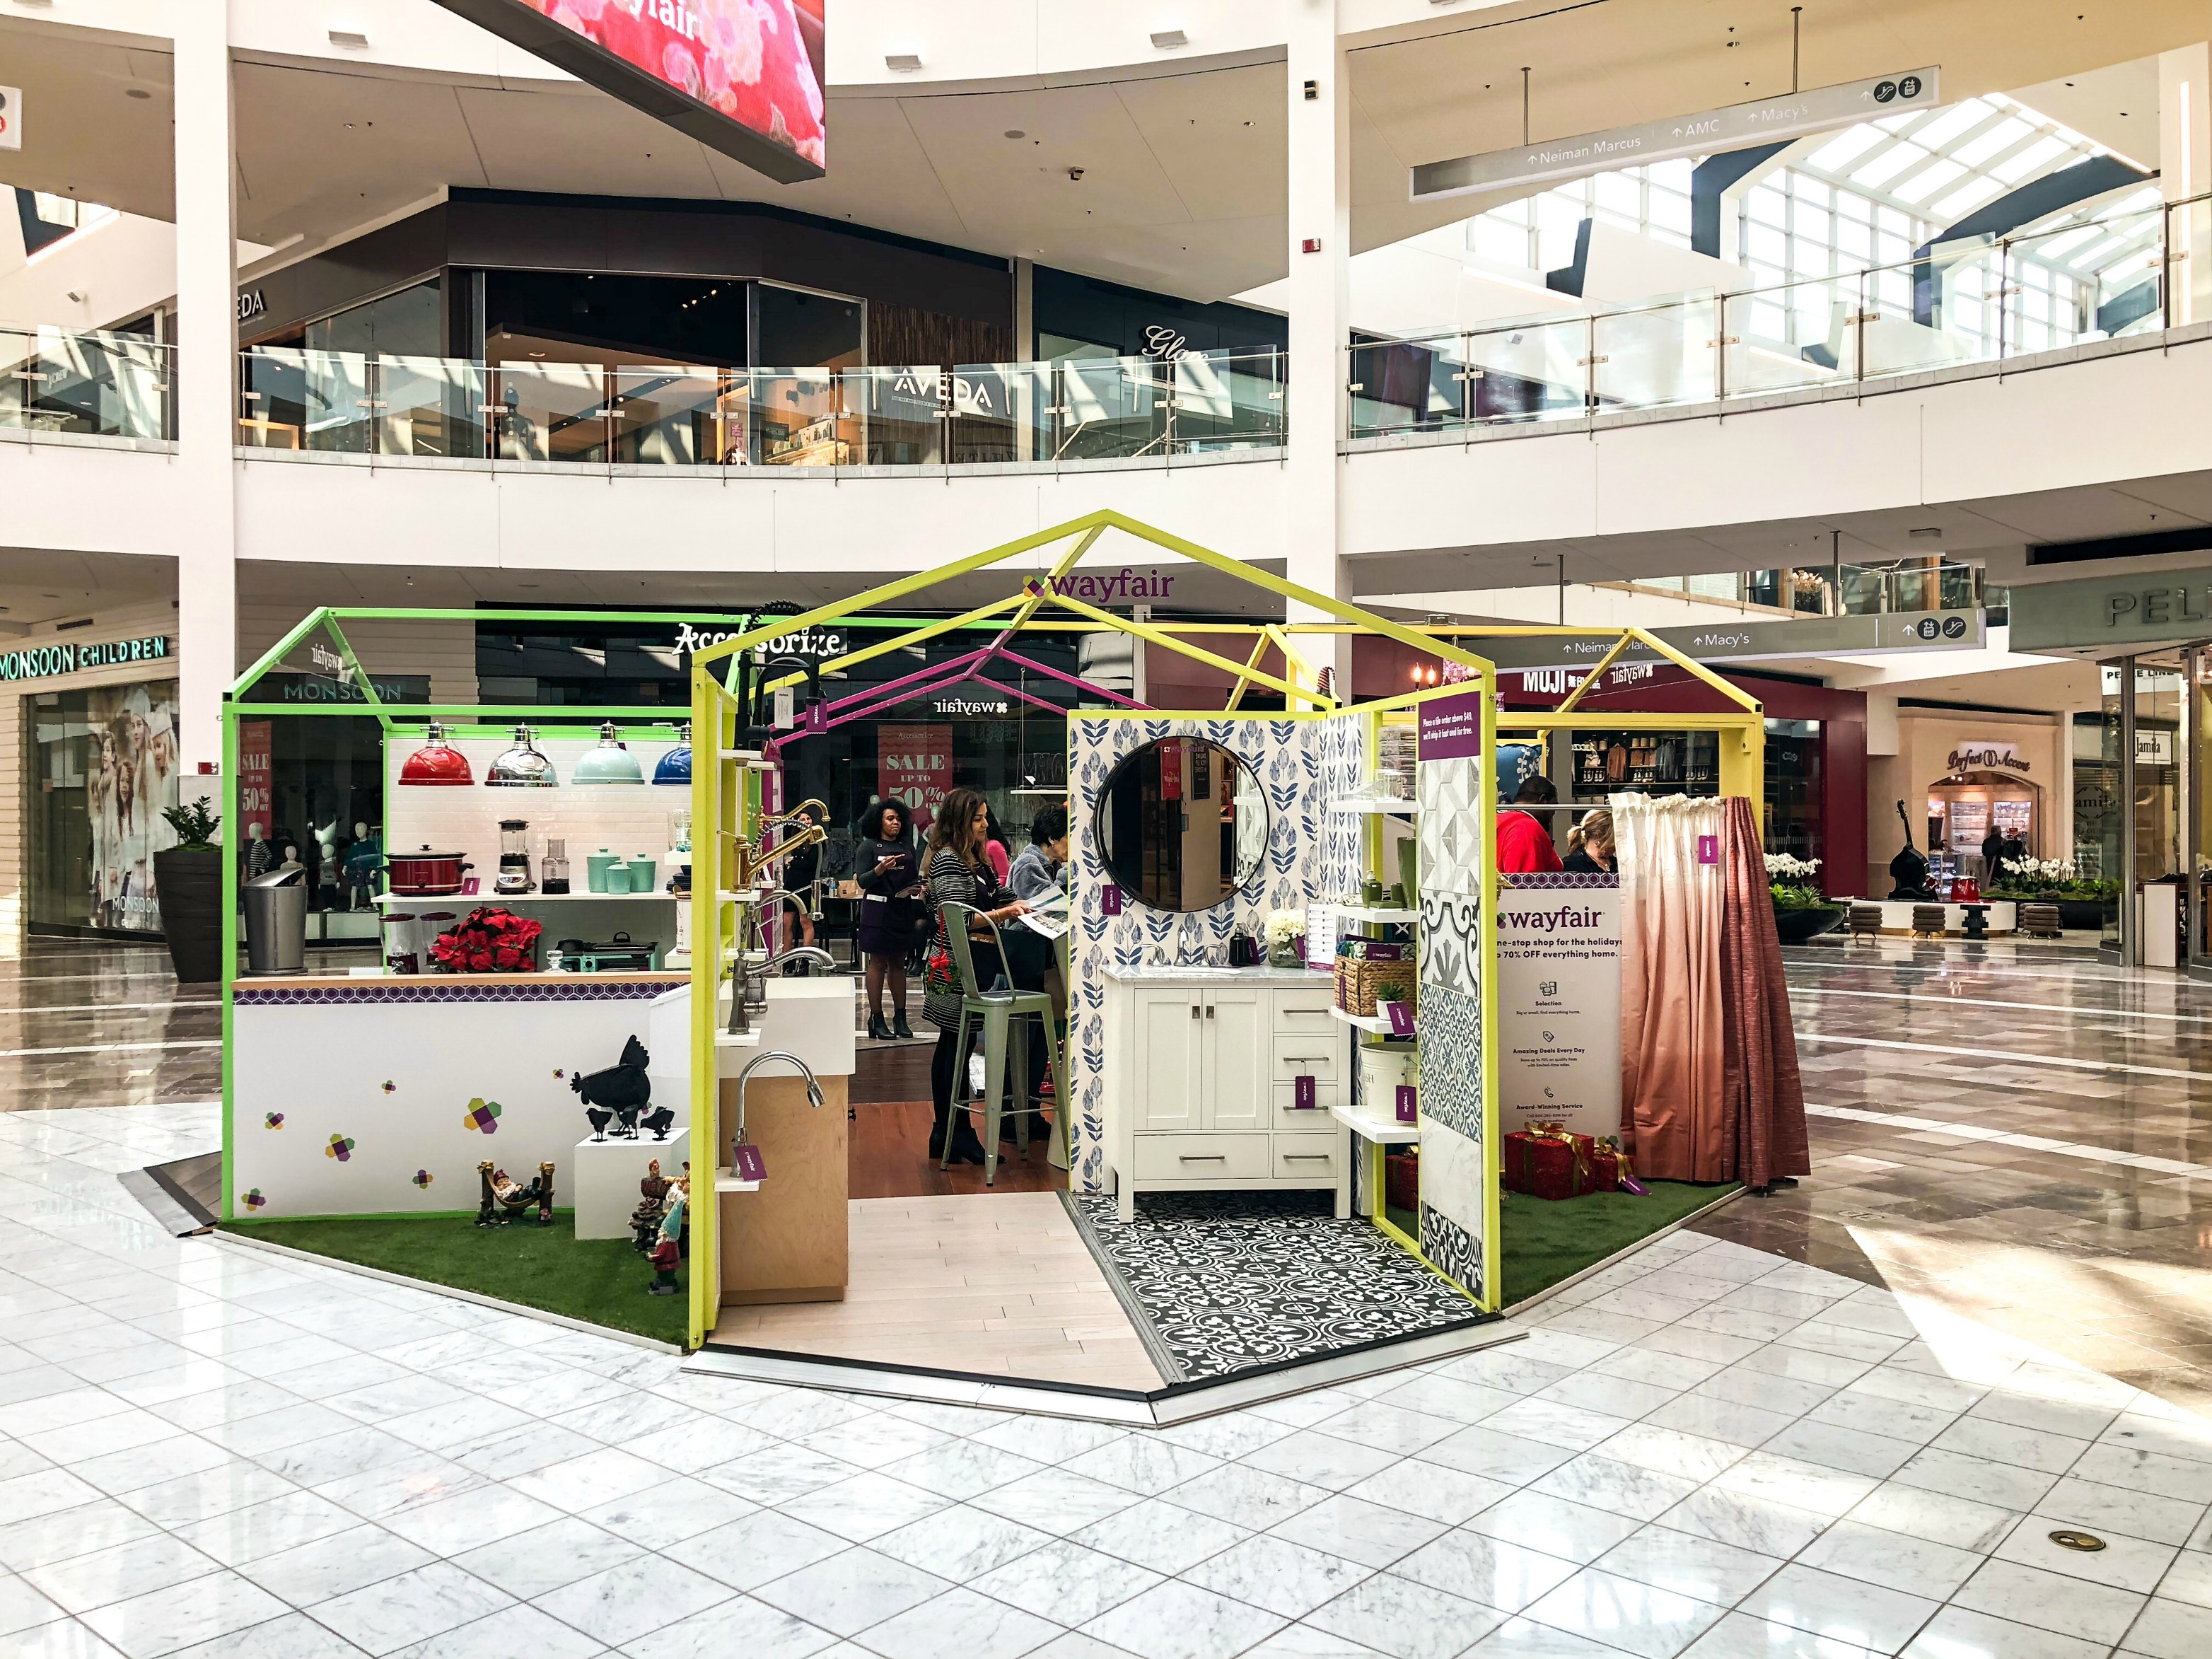 Style Your Holiday with the Wayfair Pop-Up shop at Westfield Garden State Plaza